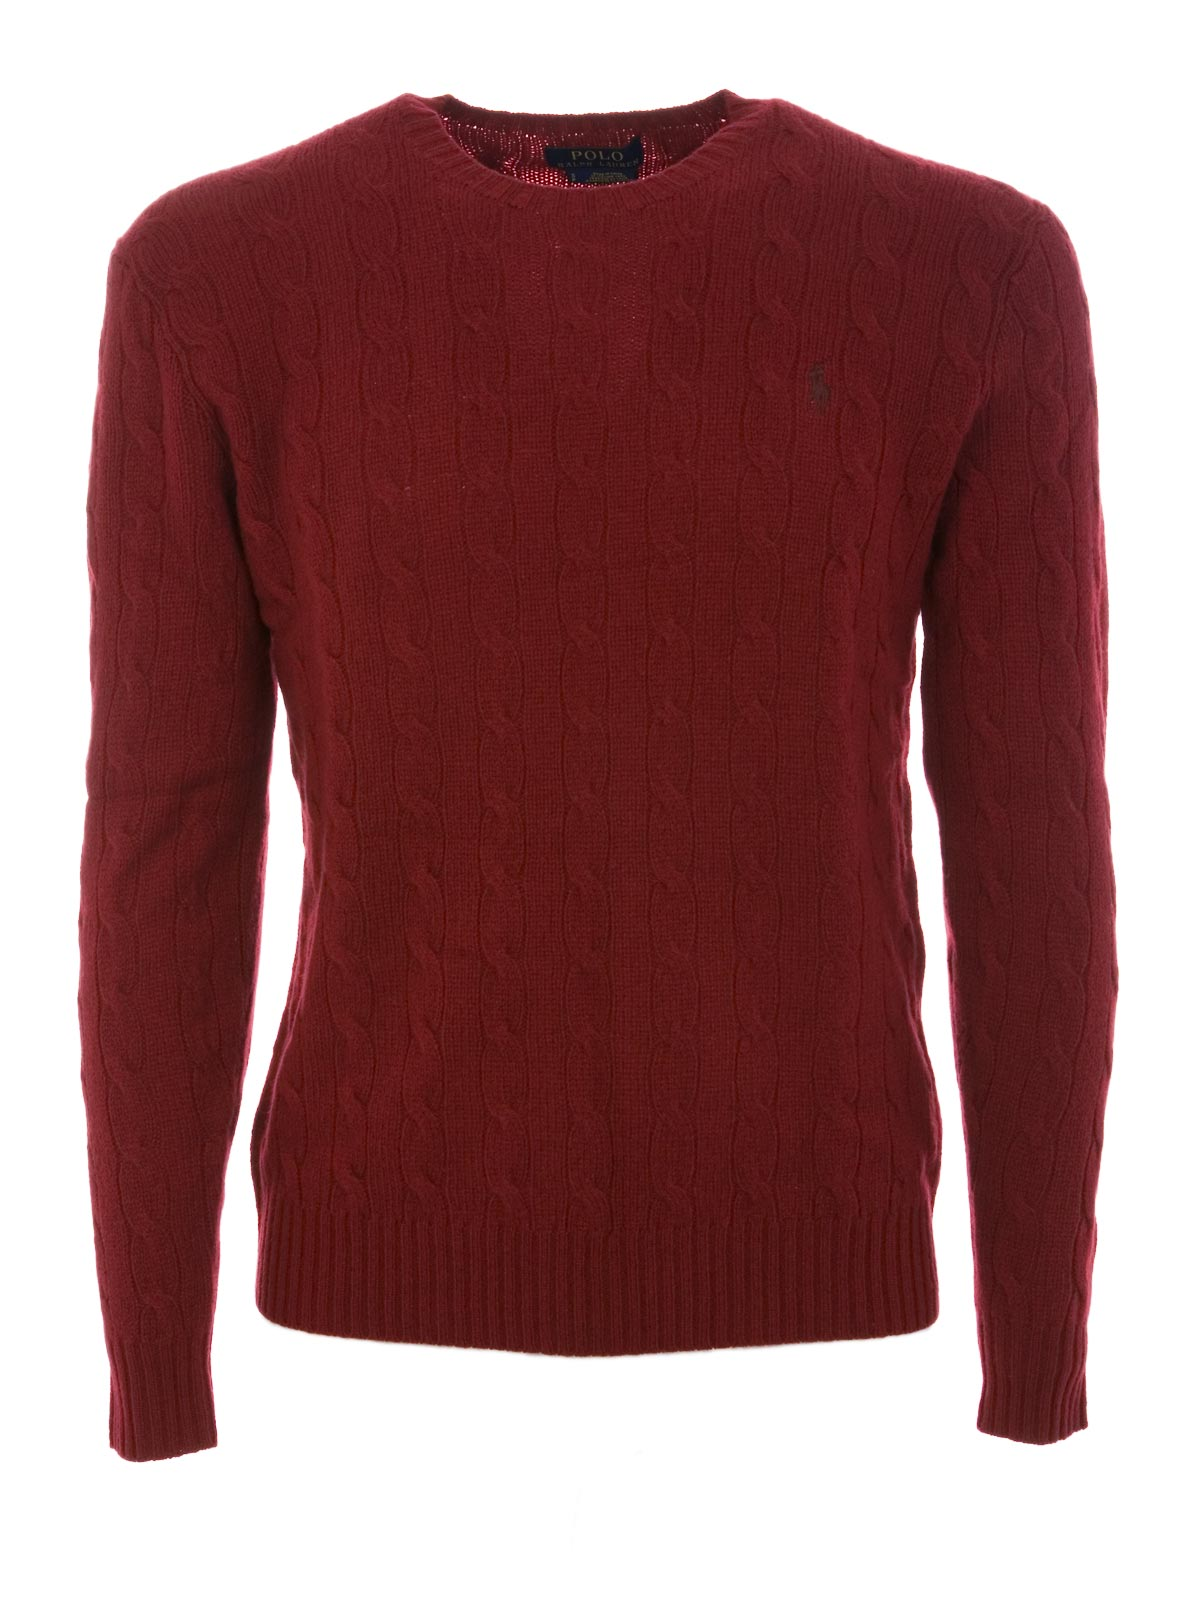 73005537edee3 POLO RALPH LAUREN Cable-Knit Cashmere Sweater Holiday Red ...